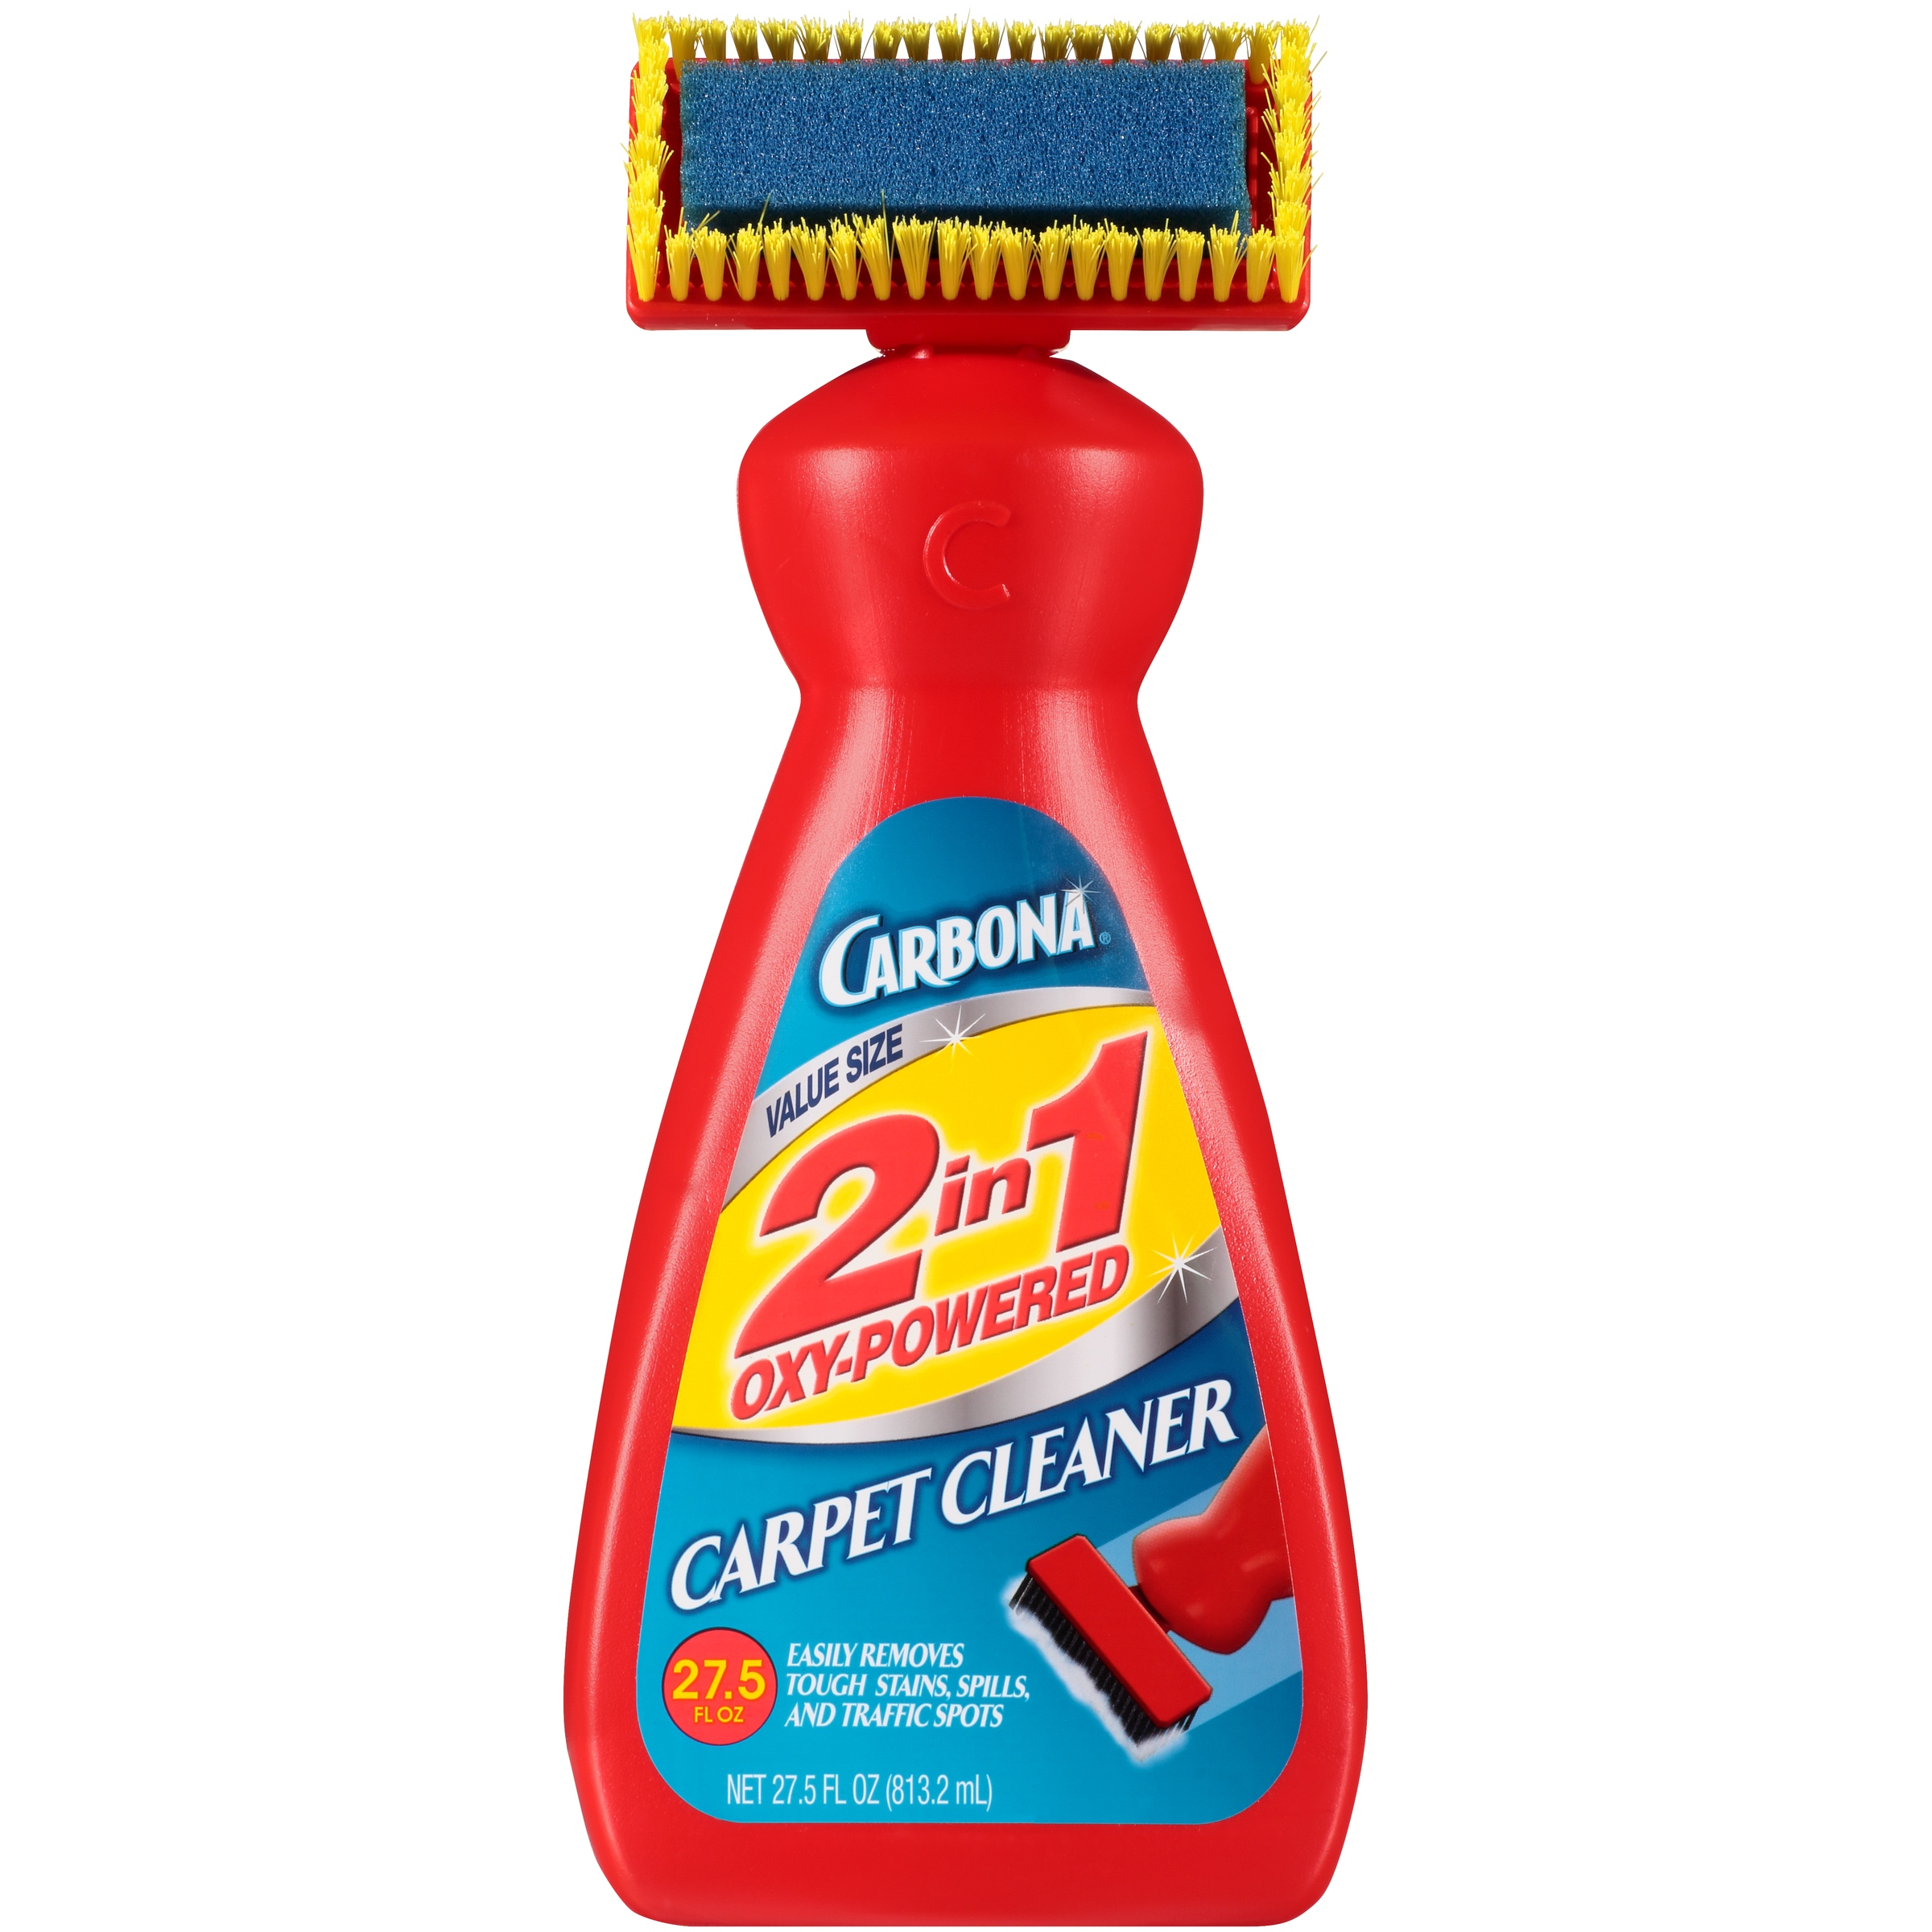 Carbona 2 in 1 Oxy-Powered Carpet & Upholstery Cleaner, 27.5 Fl Oz